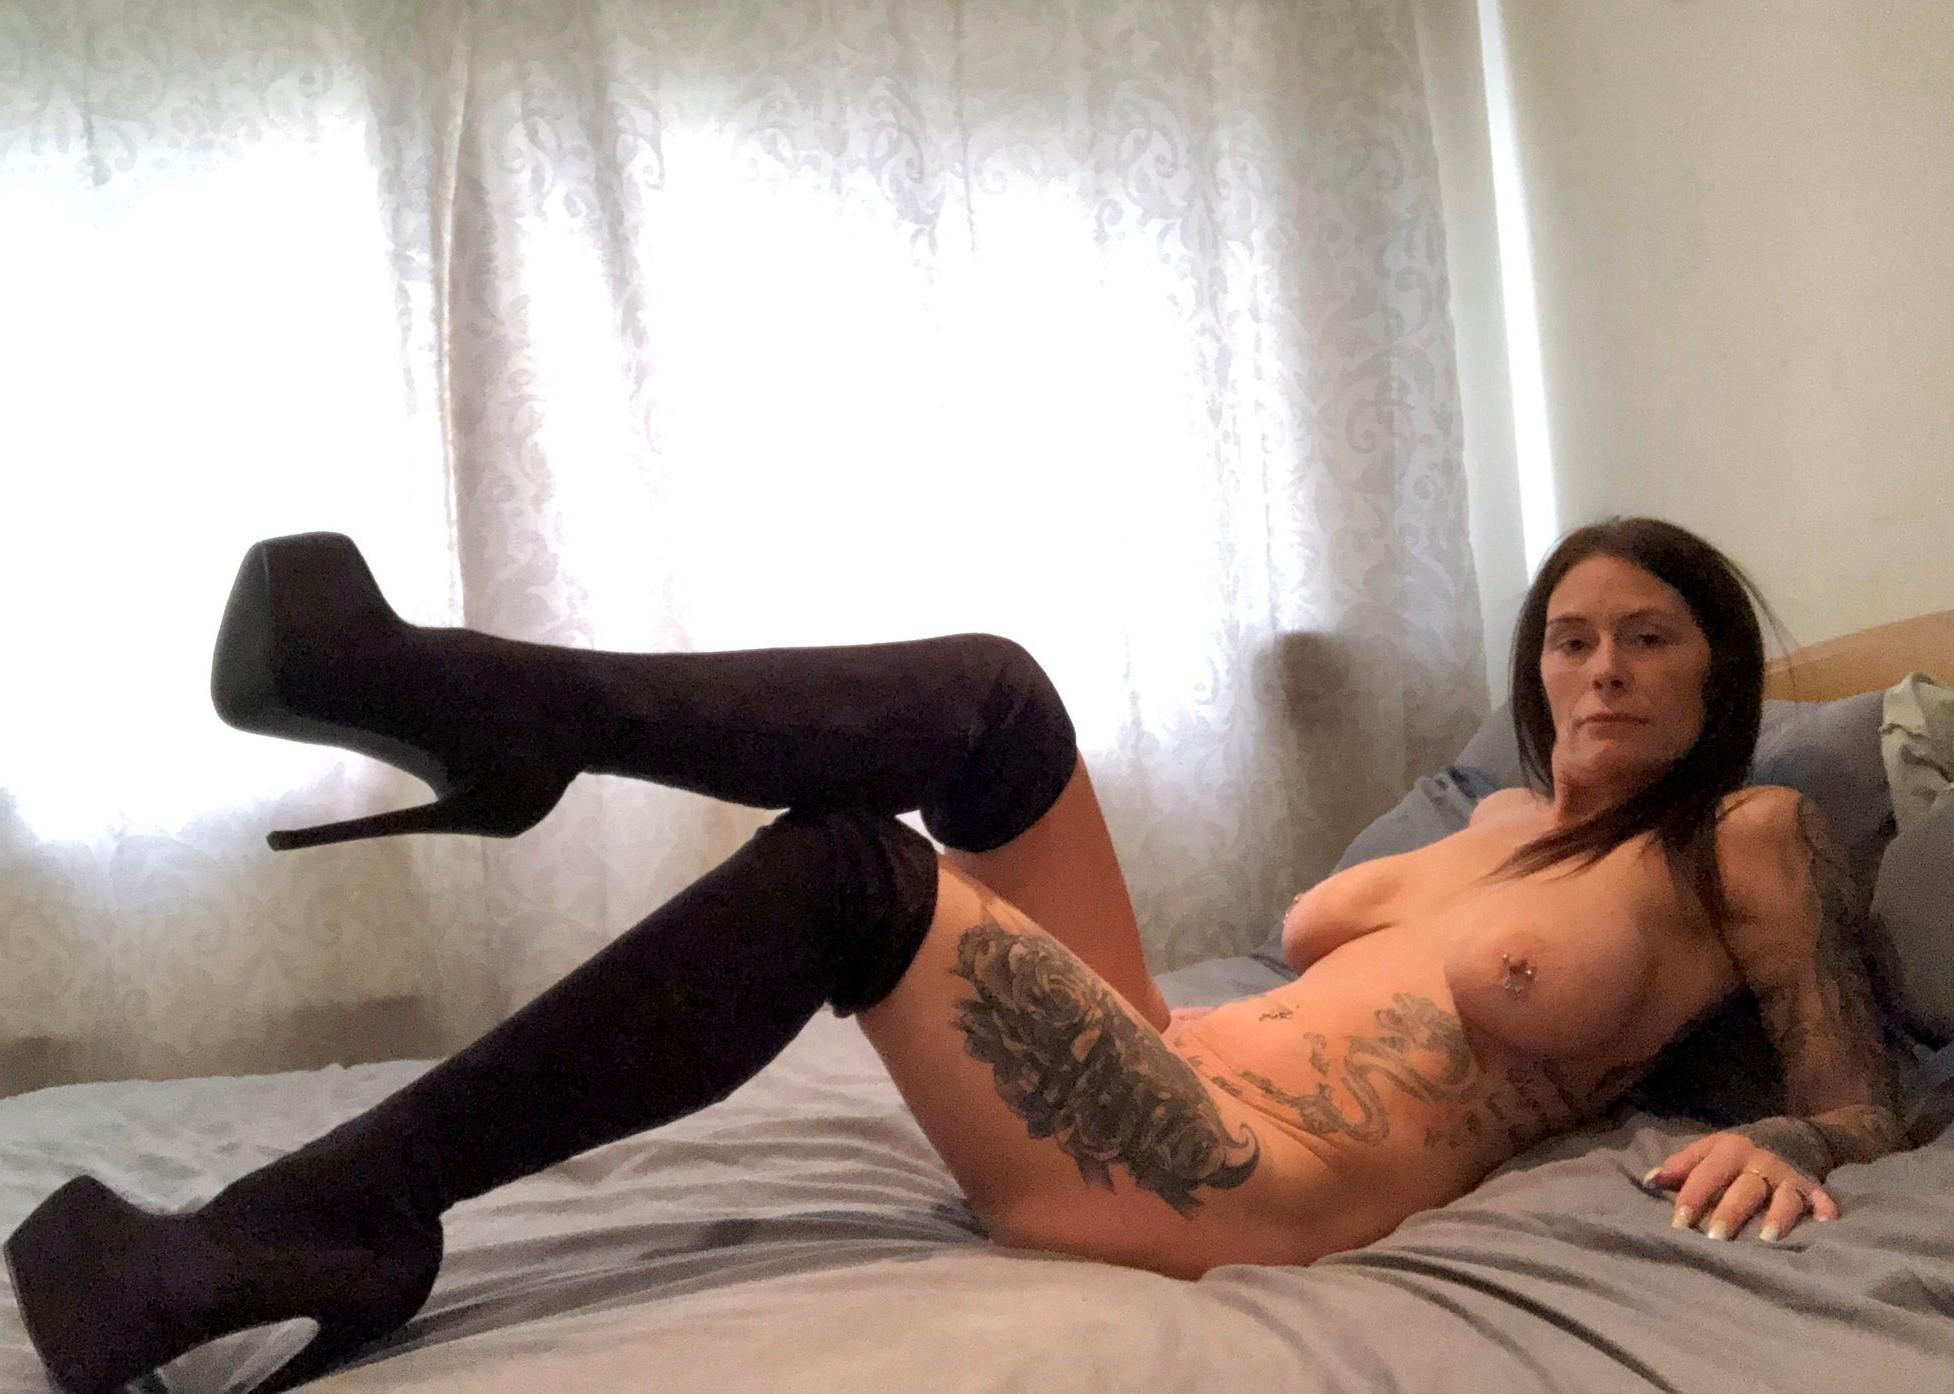 Naughty MILF strips to thigh high leather boots during solo action. Sexy hottie thigh boots showing off her round hot body lying on the bed